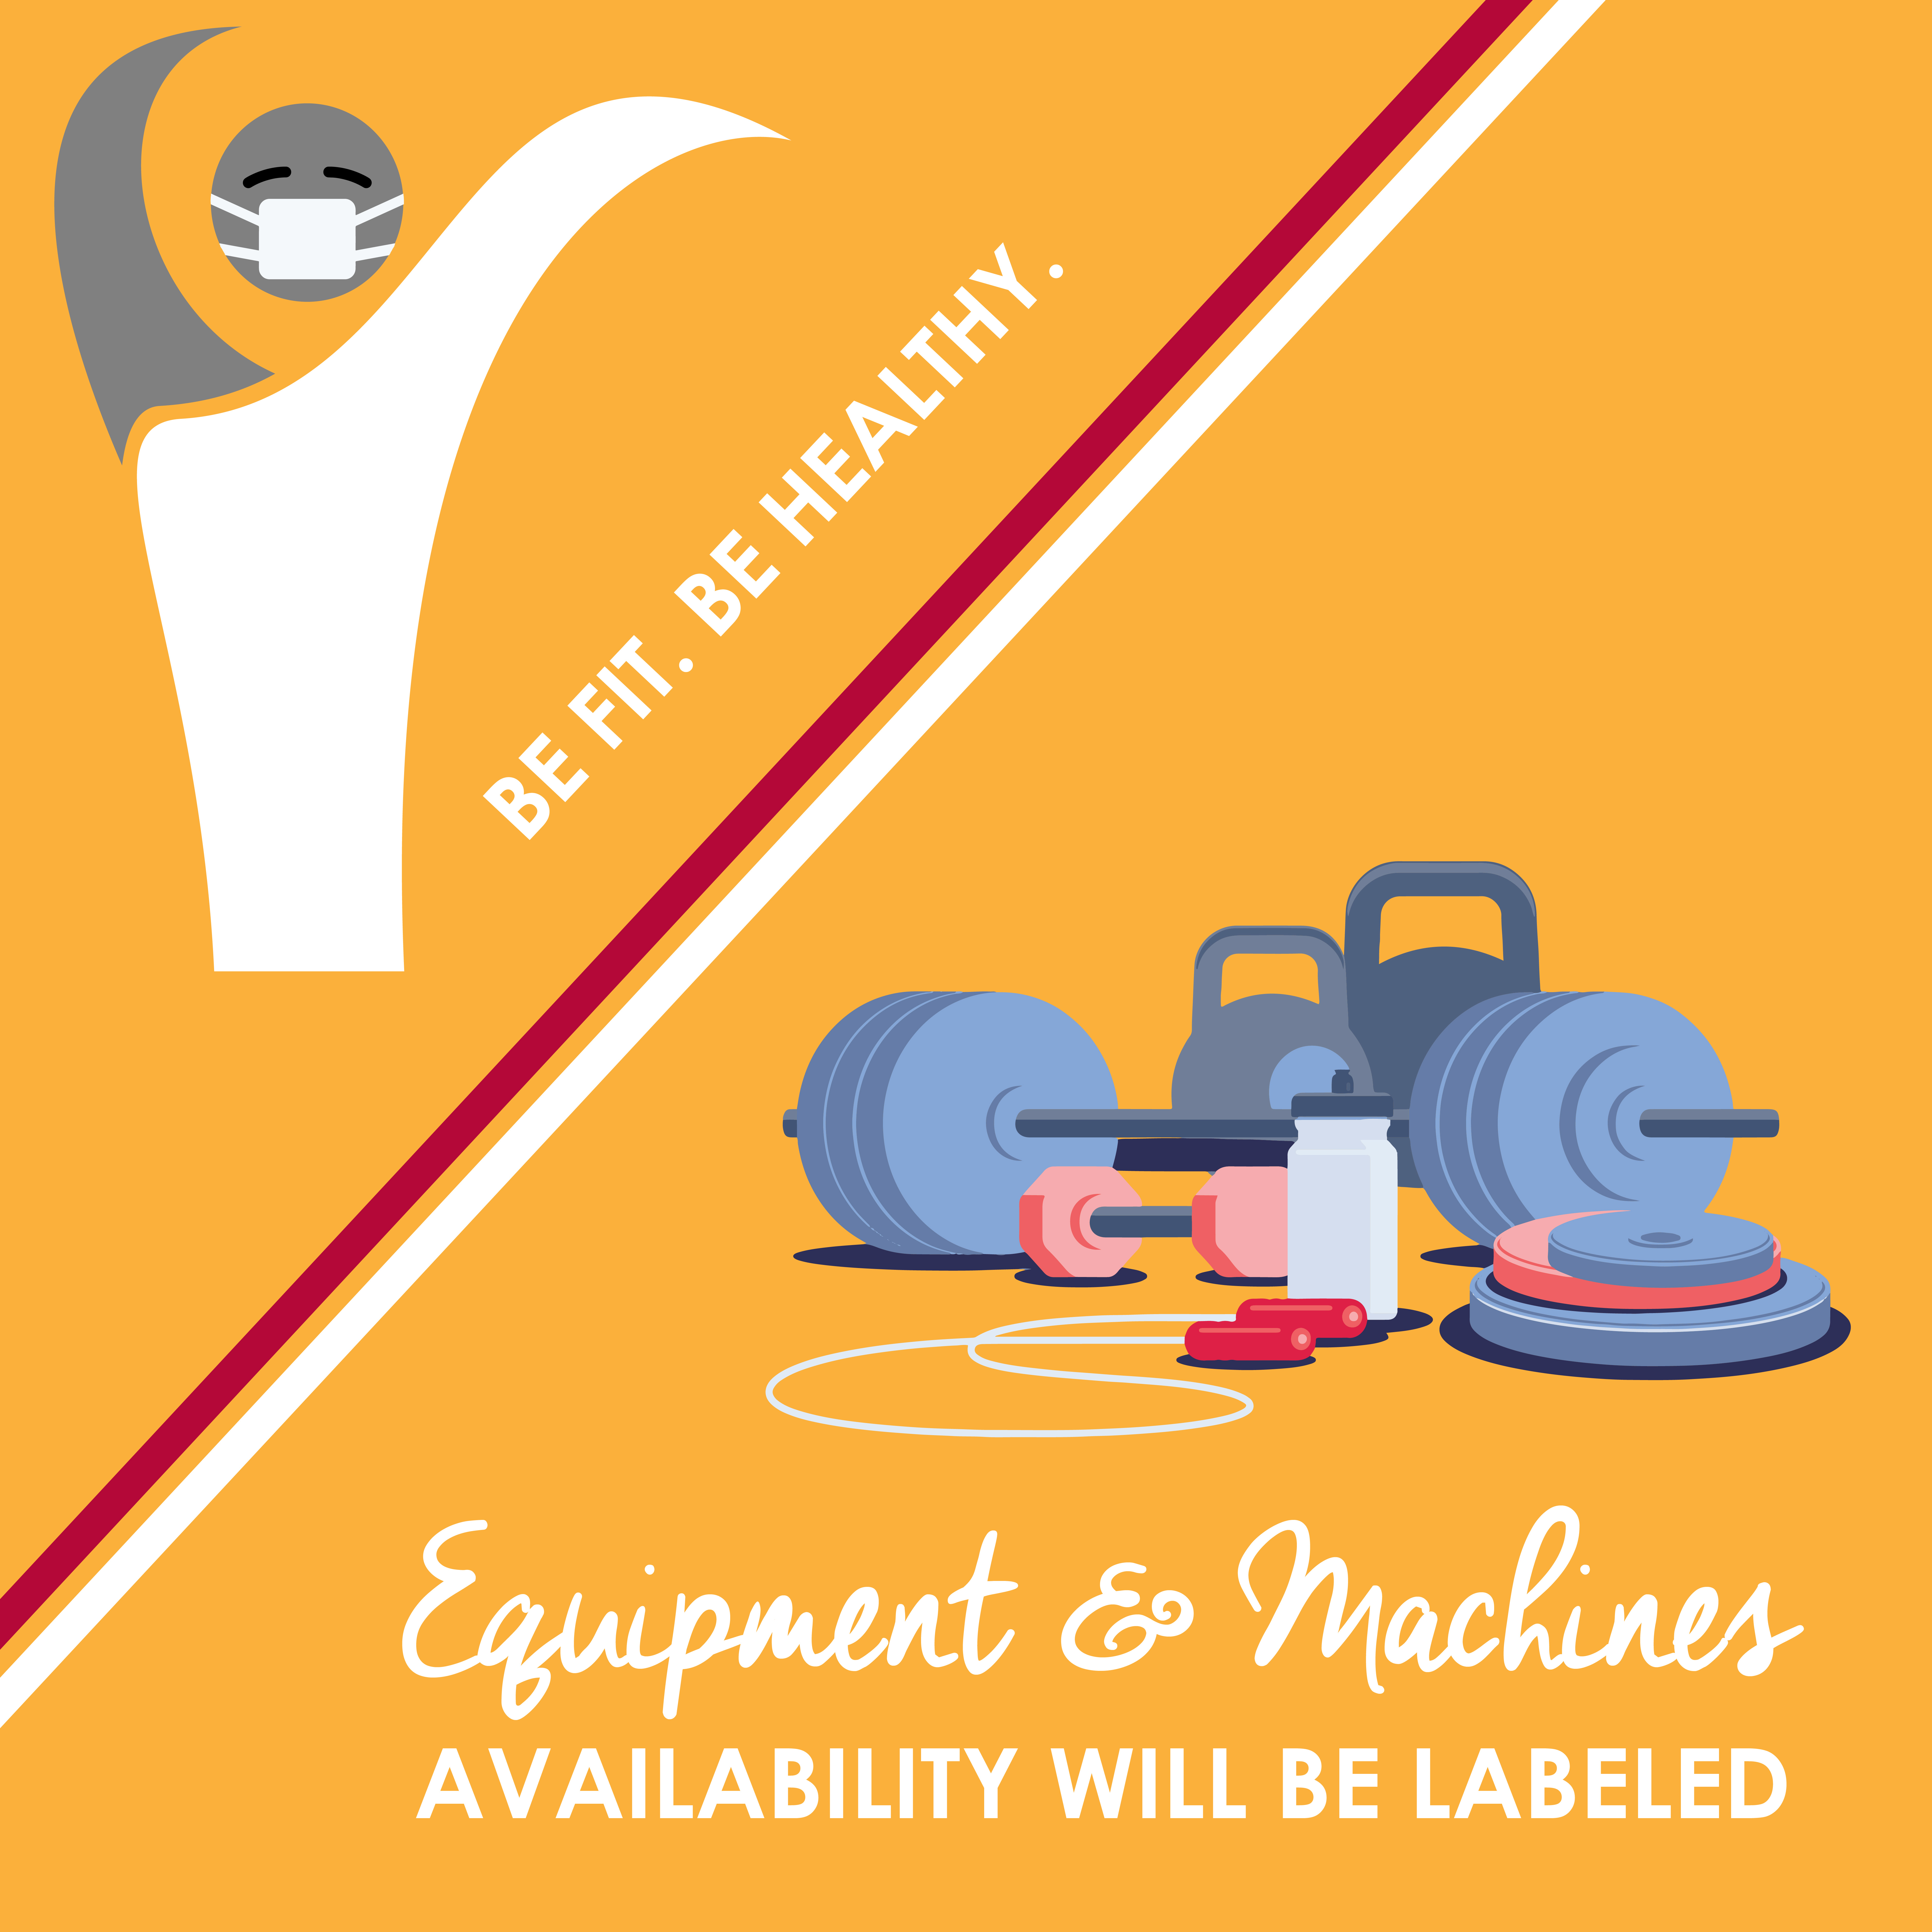 Please remember to wipe all fitness equipment before and after use